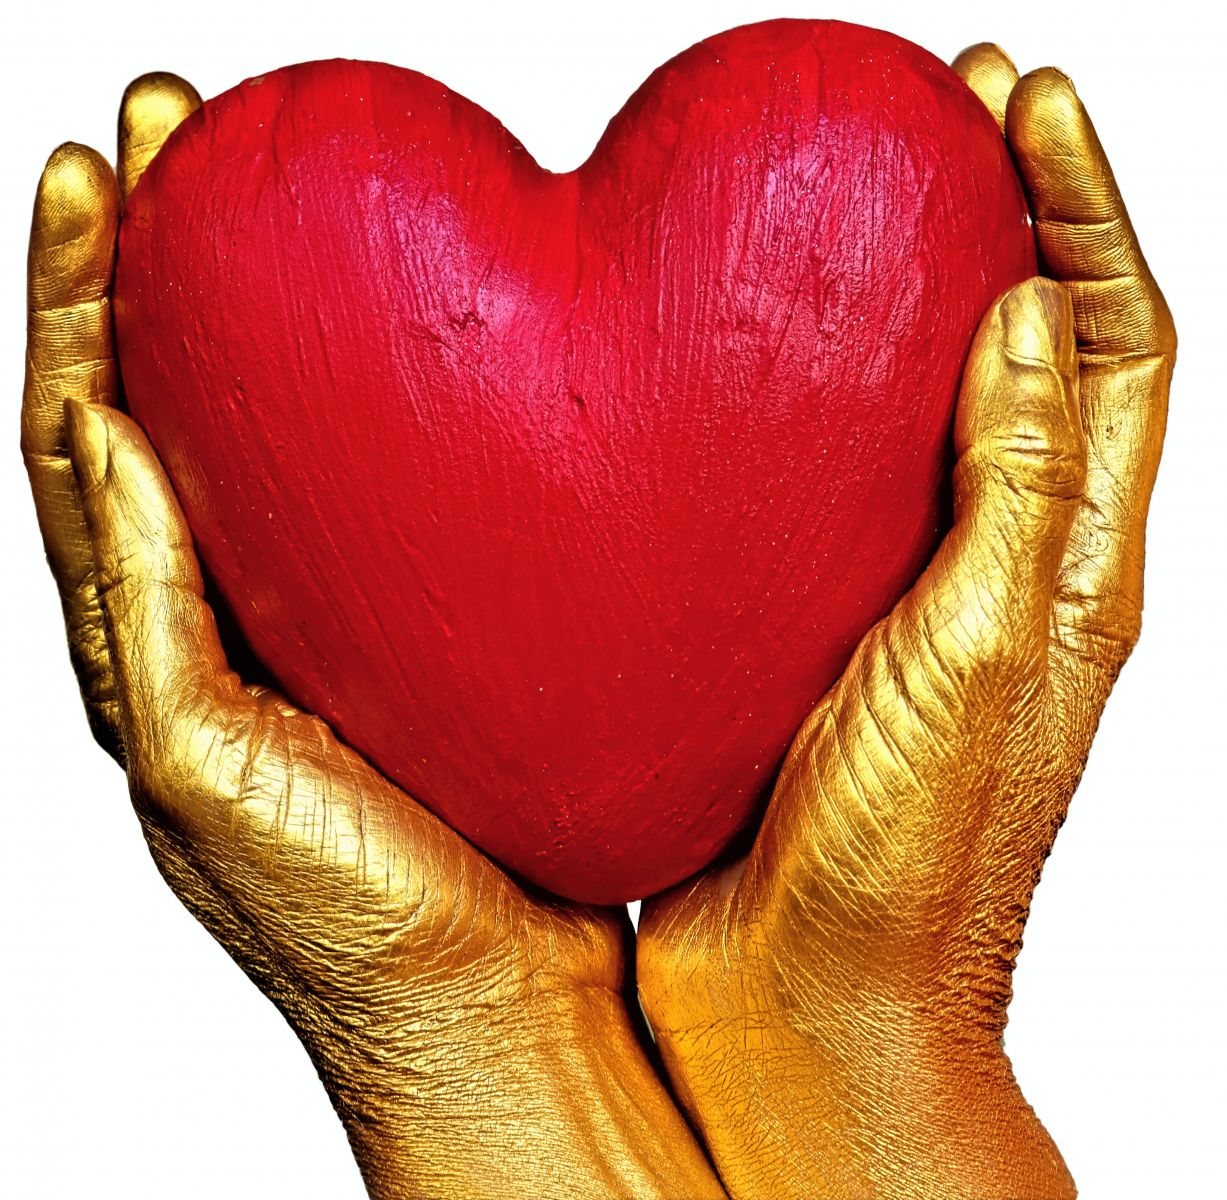 heart being held by two hands